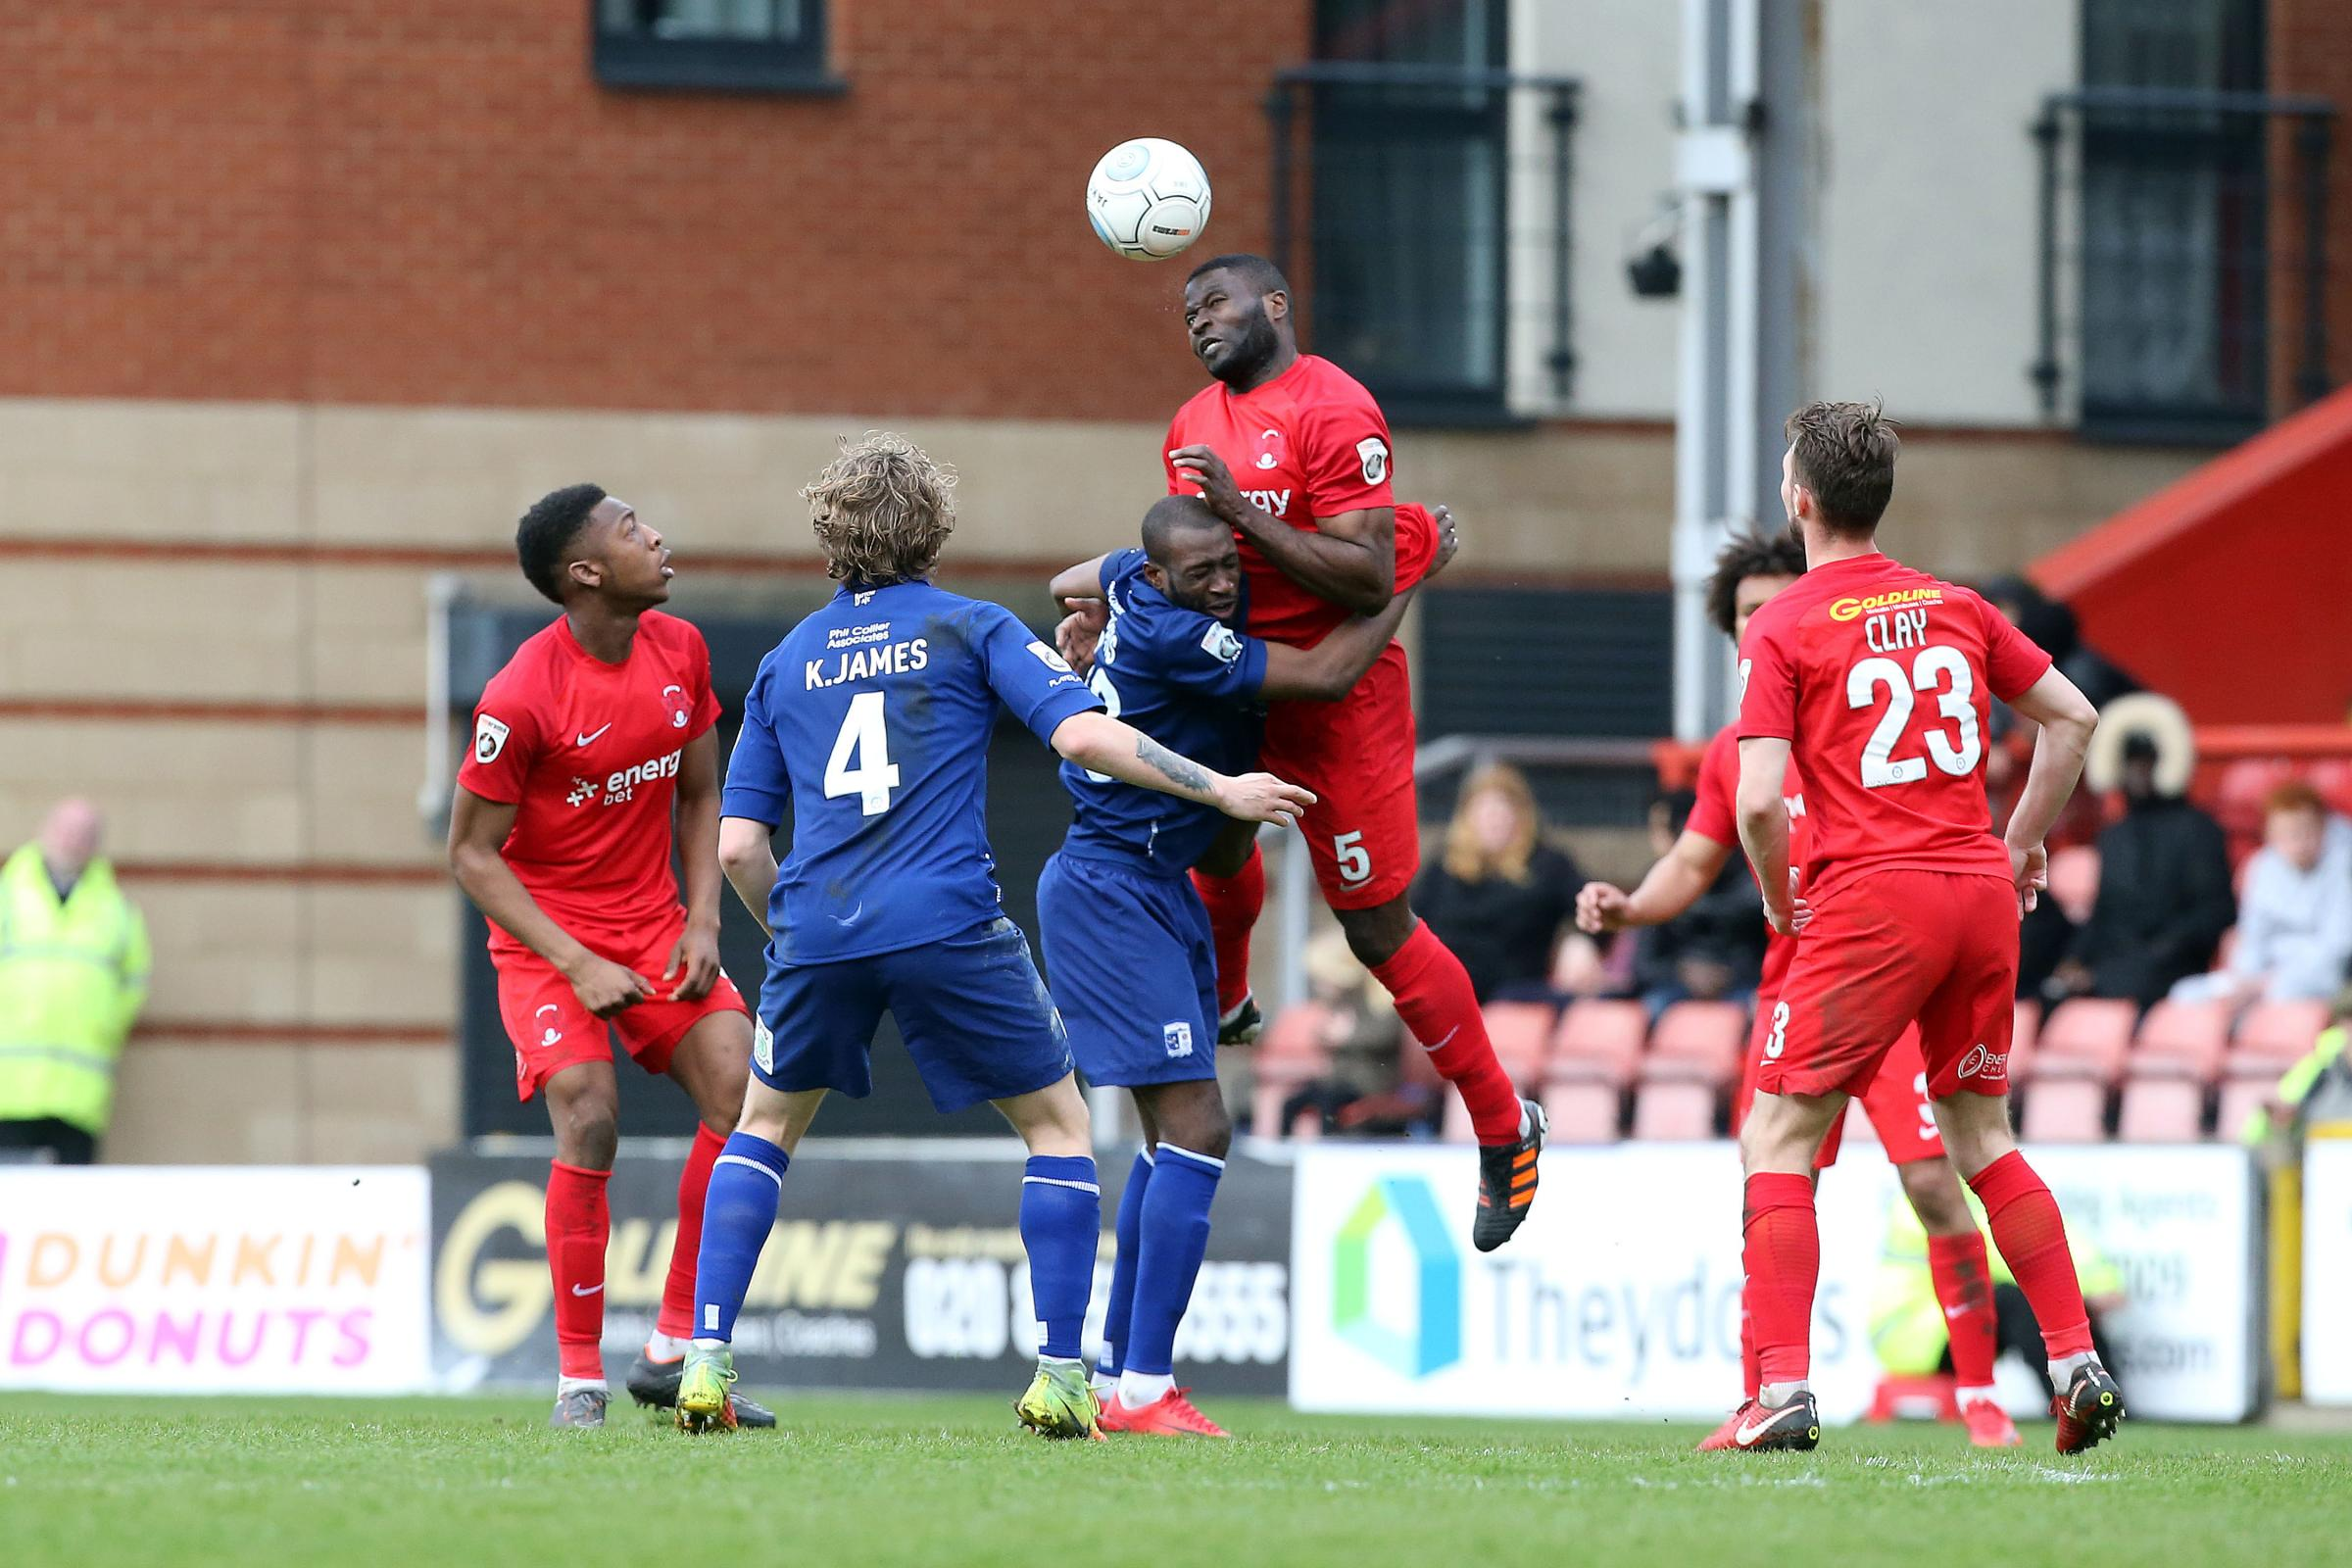 George Elokobi picked up a thigh strain against Hartlepool United last week. Picture: Simon O'Connor.